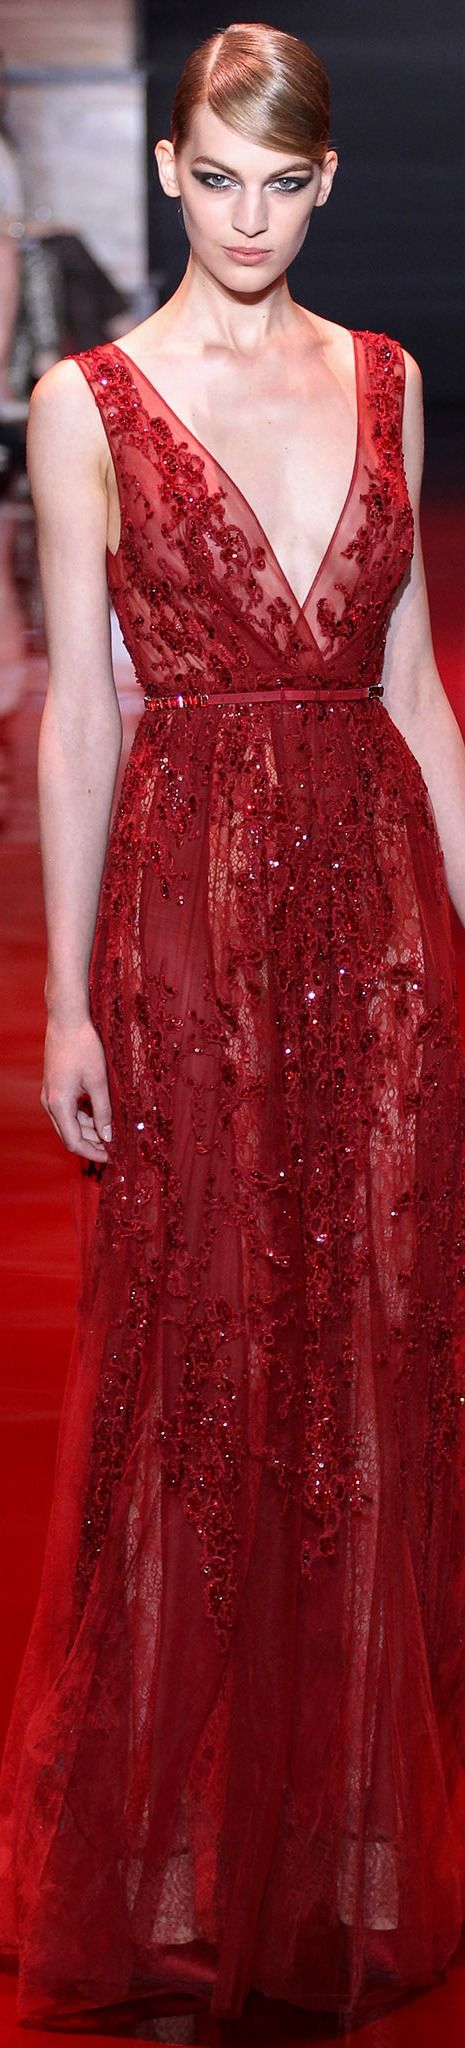 Gorgeous Holiday Gown - Elie Saab